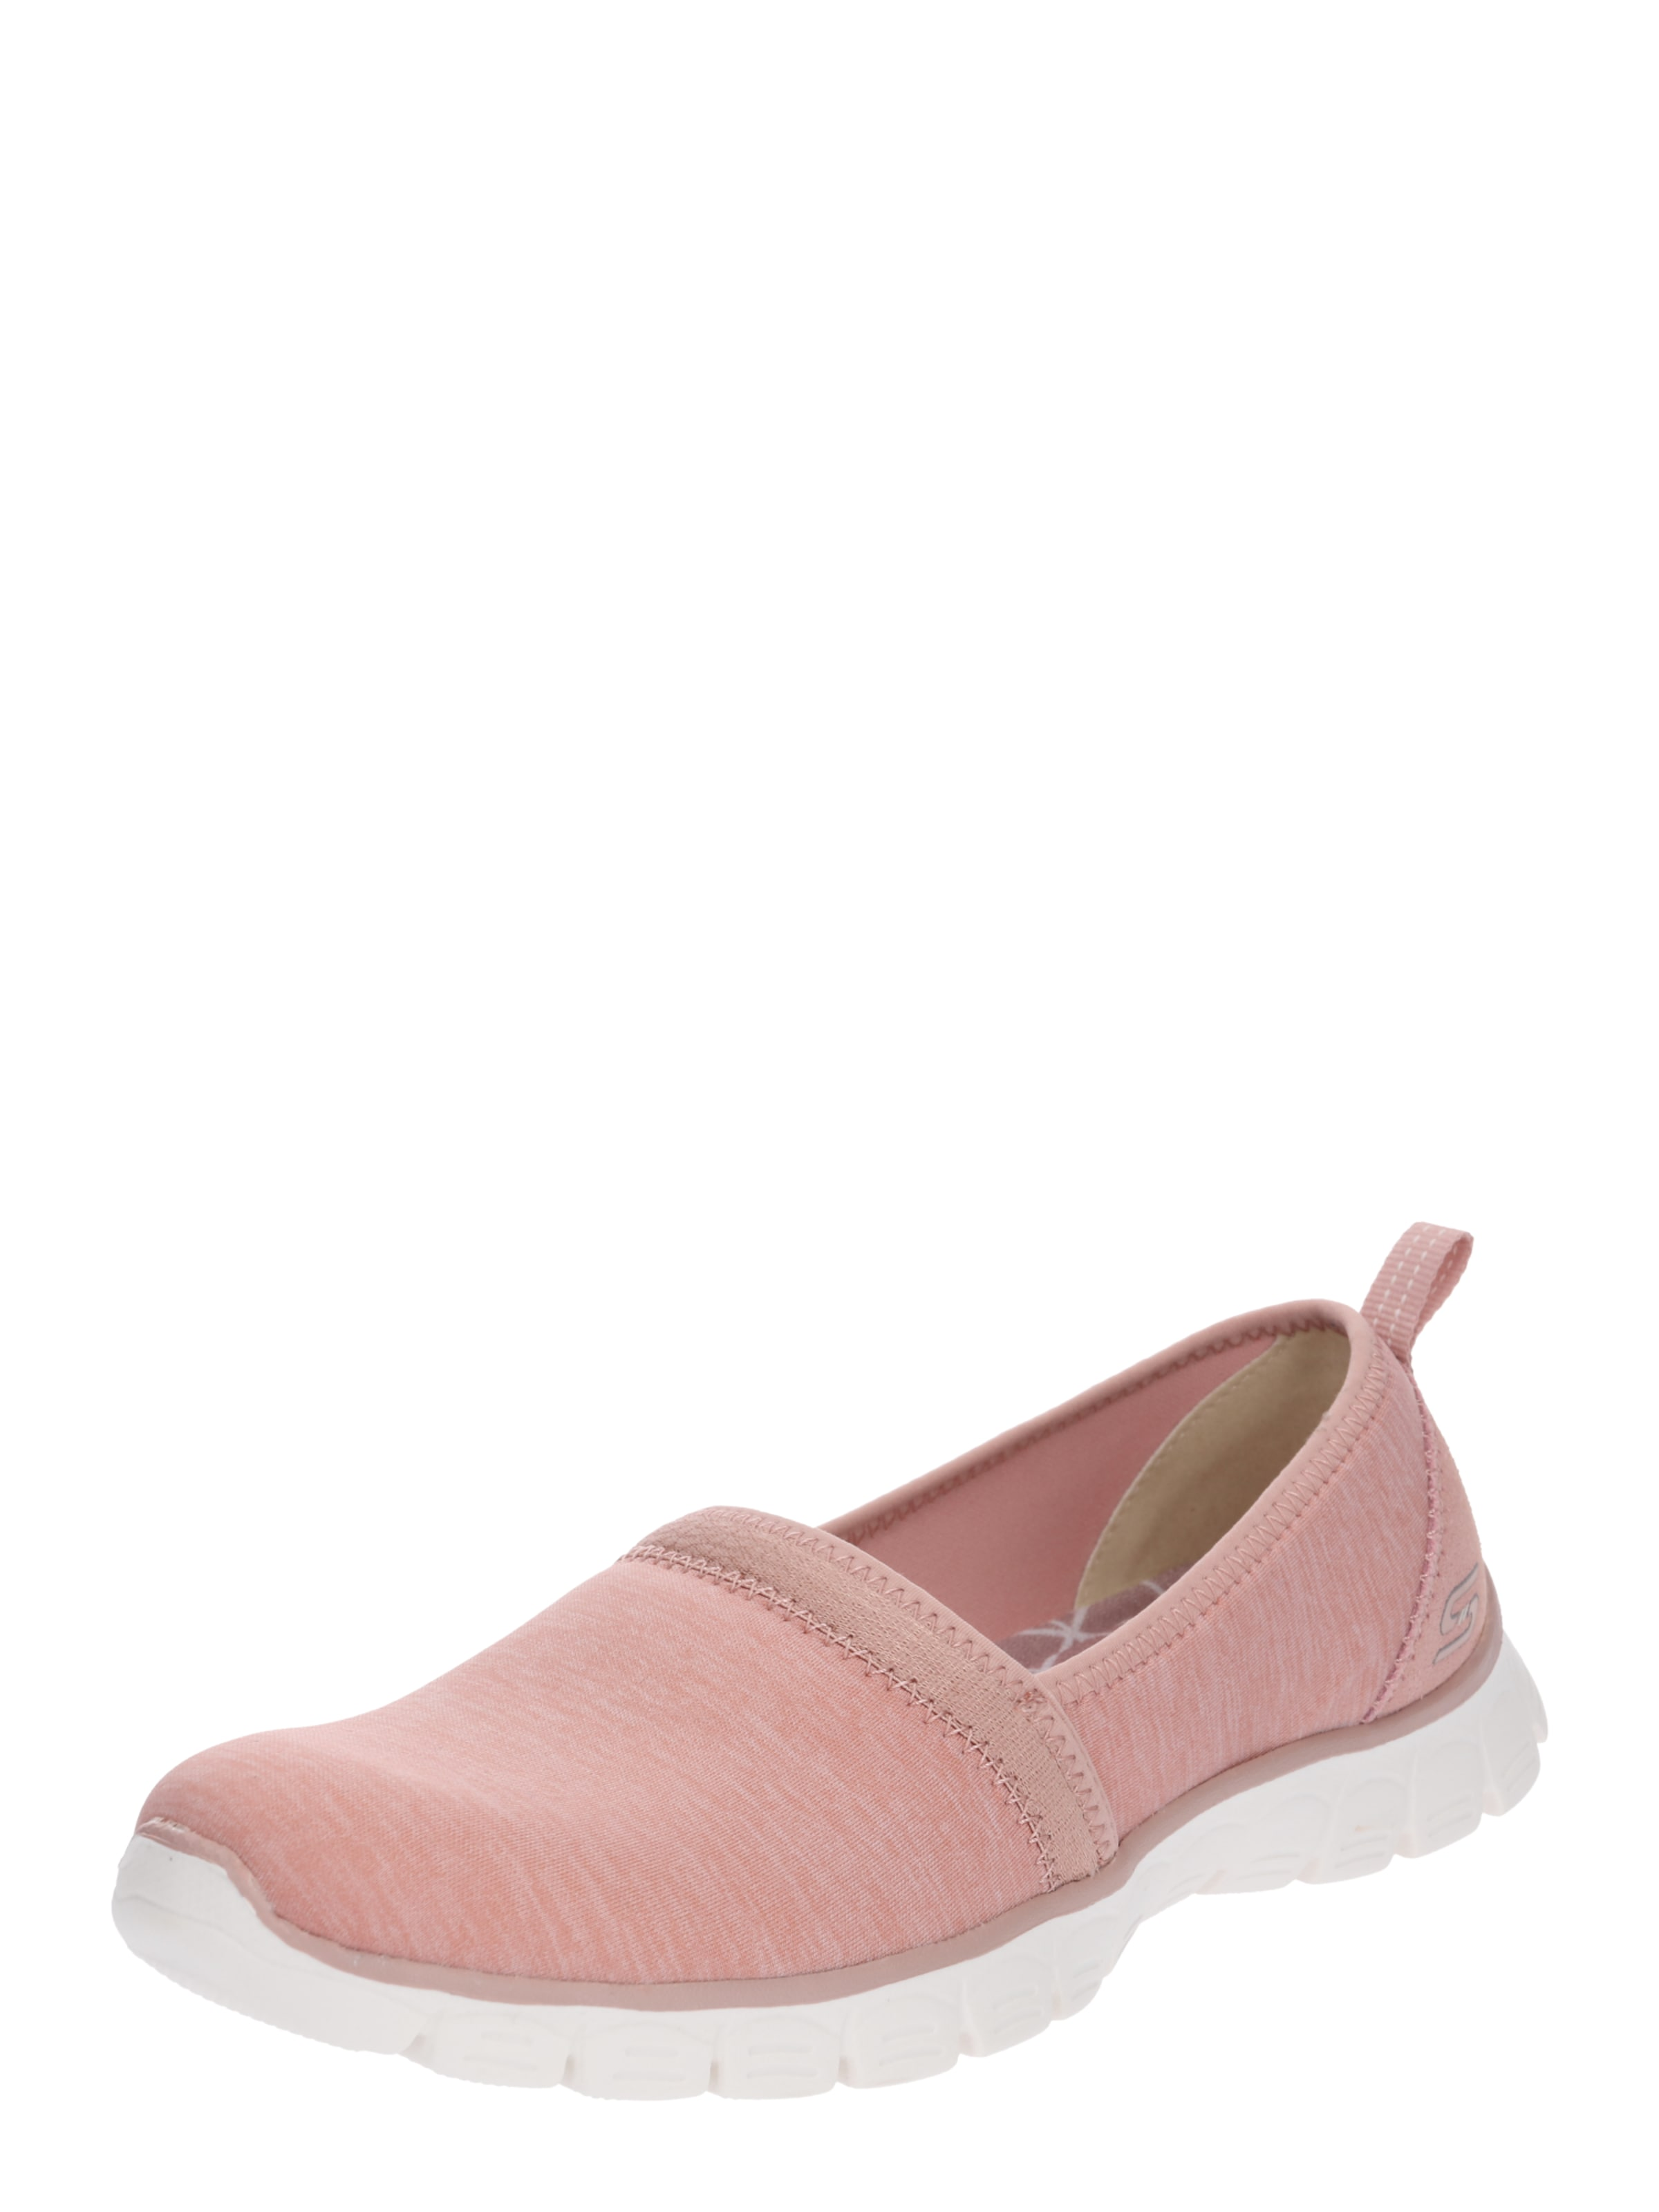 Motion' Skechers Rosa 0Swift 'ez Flex Slipper In 3 VqzGpSUM